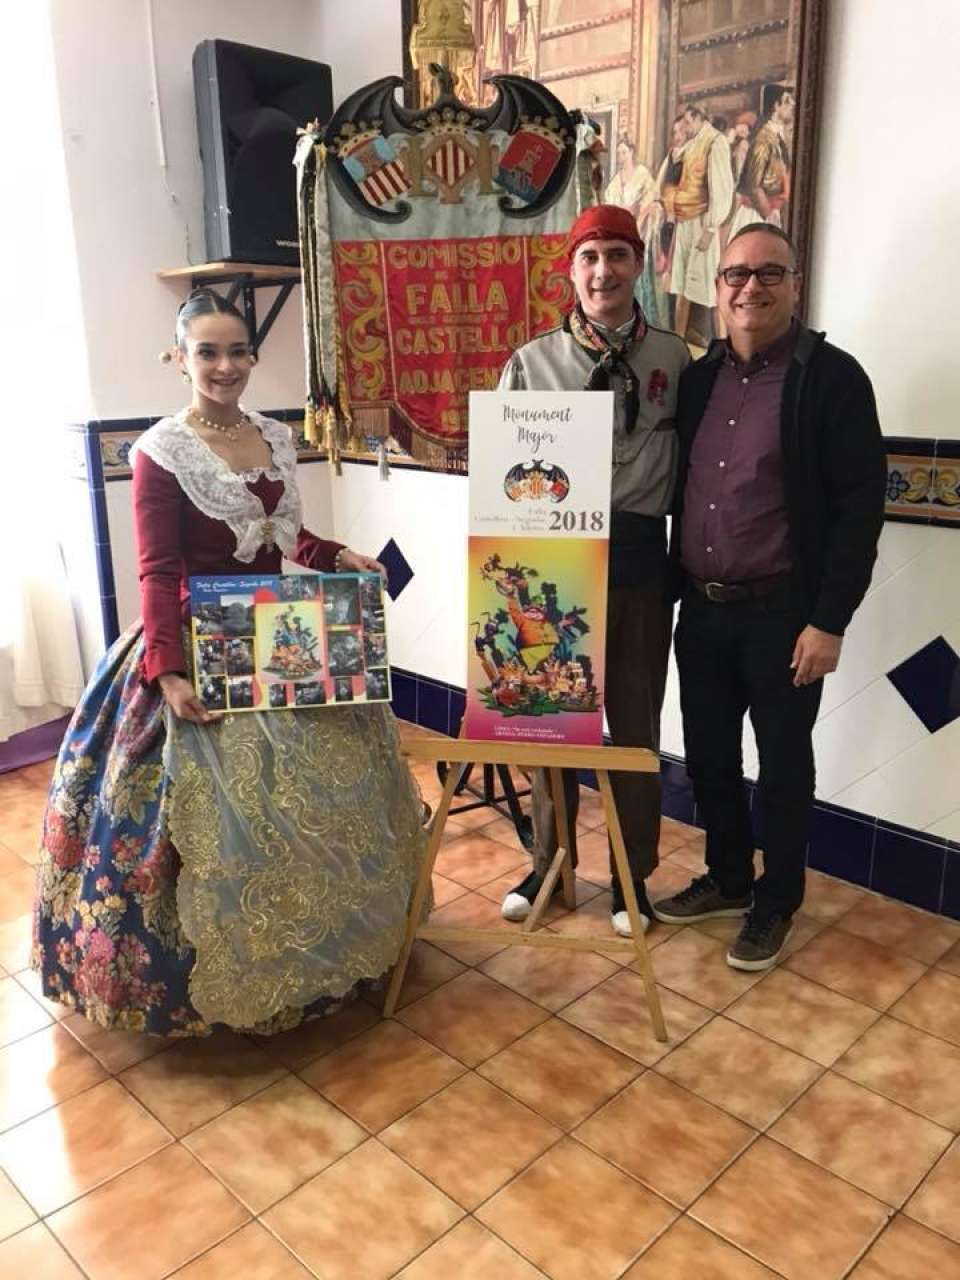 The Falla Castellón-Segorbe presented their Sketches to the Fallas 2018